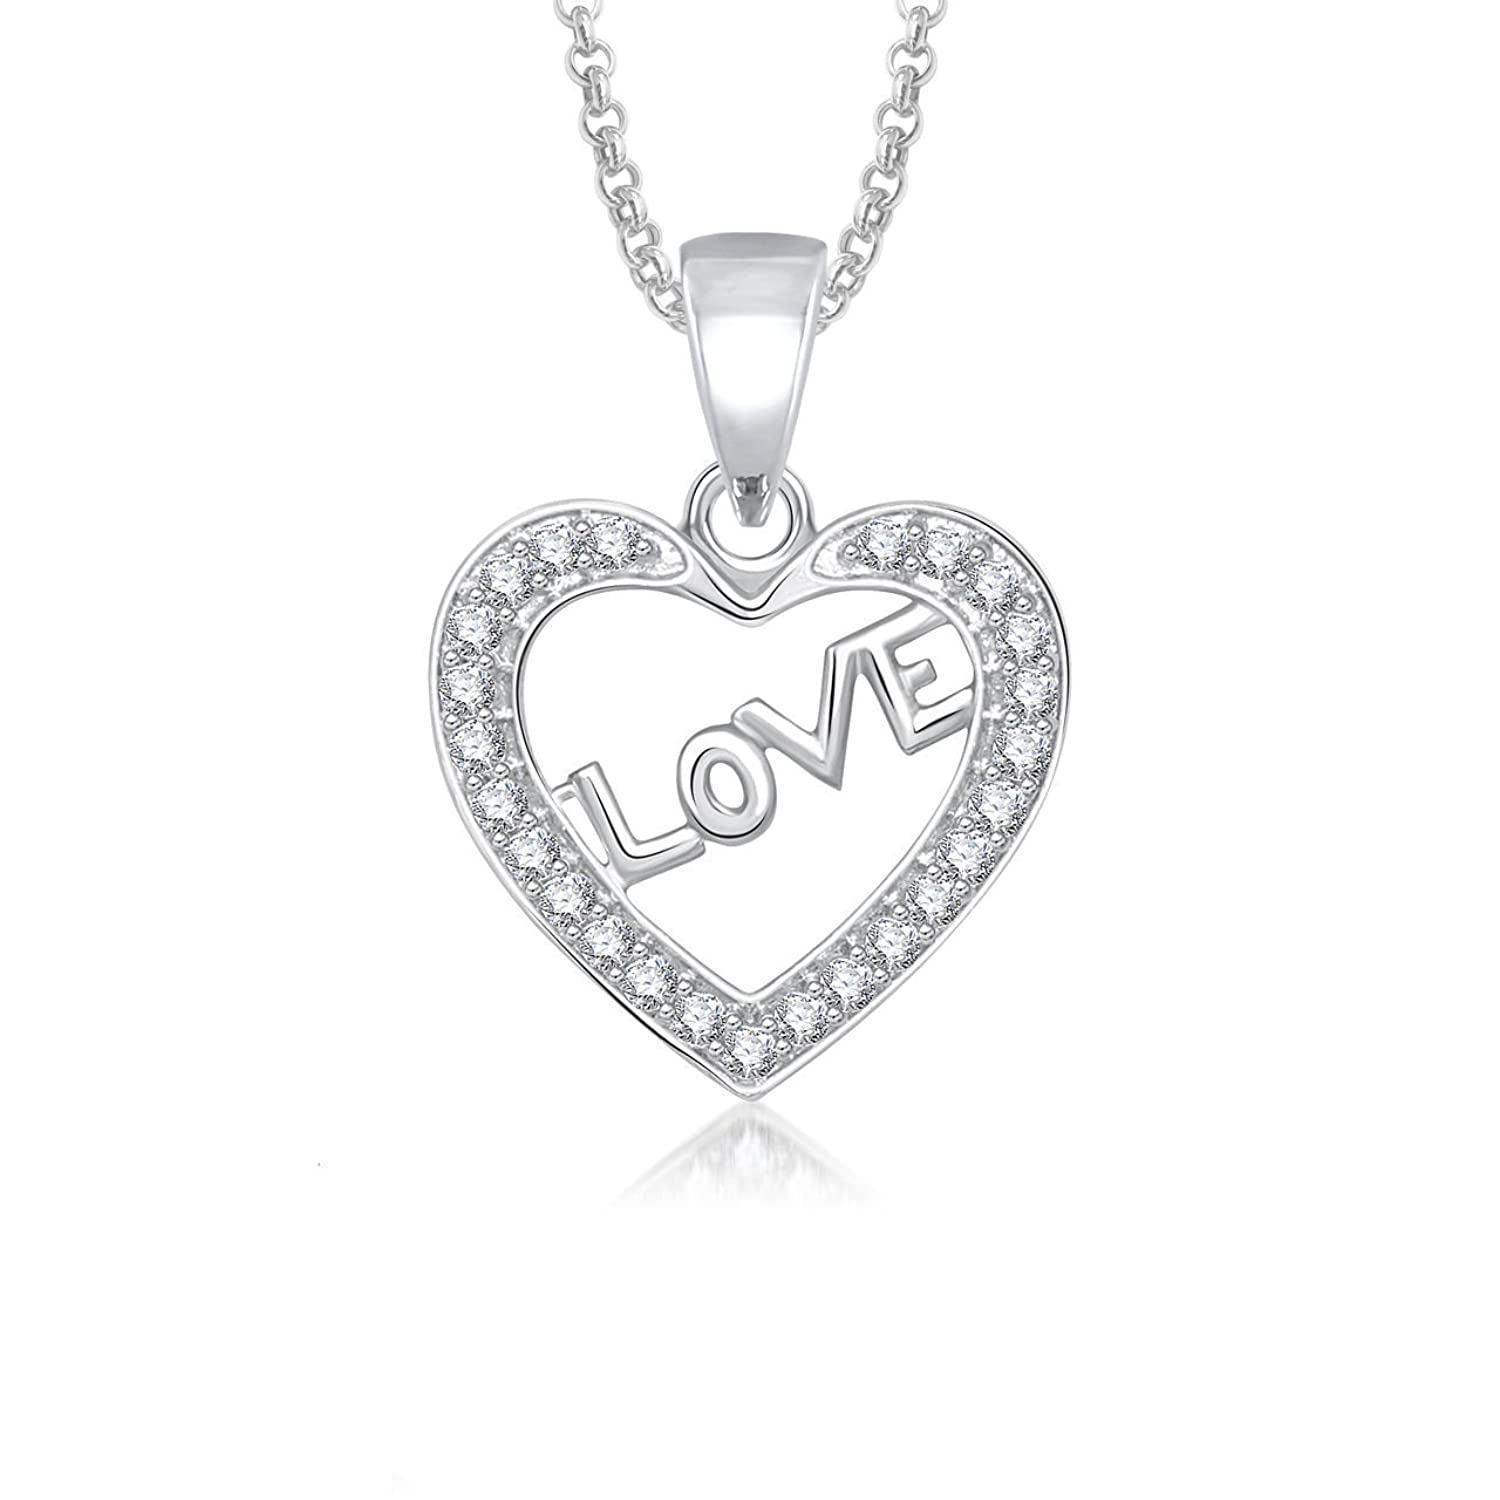 jewelry copy shop urn beautiful lockets pendant cremation memorial heart gold white diamond